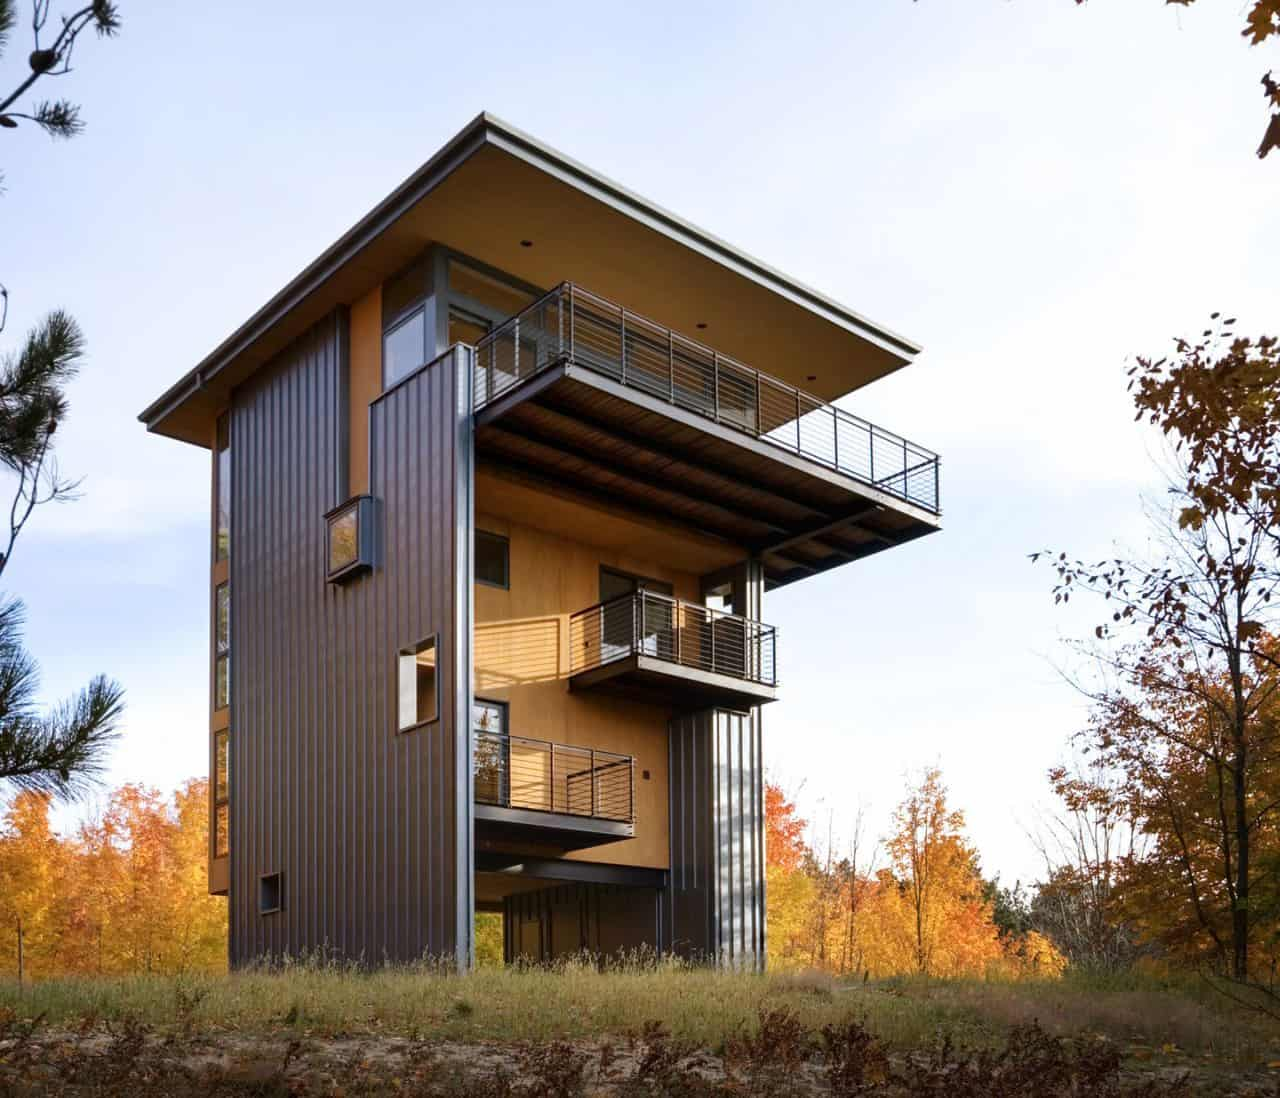 Small Lake Homes: 4-Storey Tall House Reaches Above The Forest To See The Lake